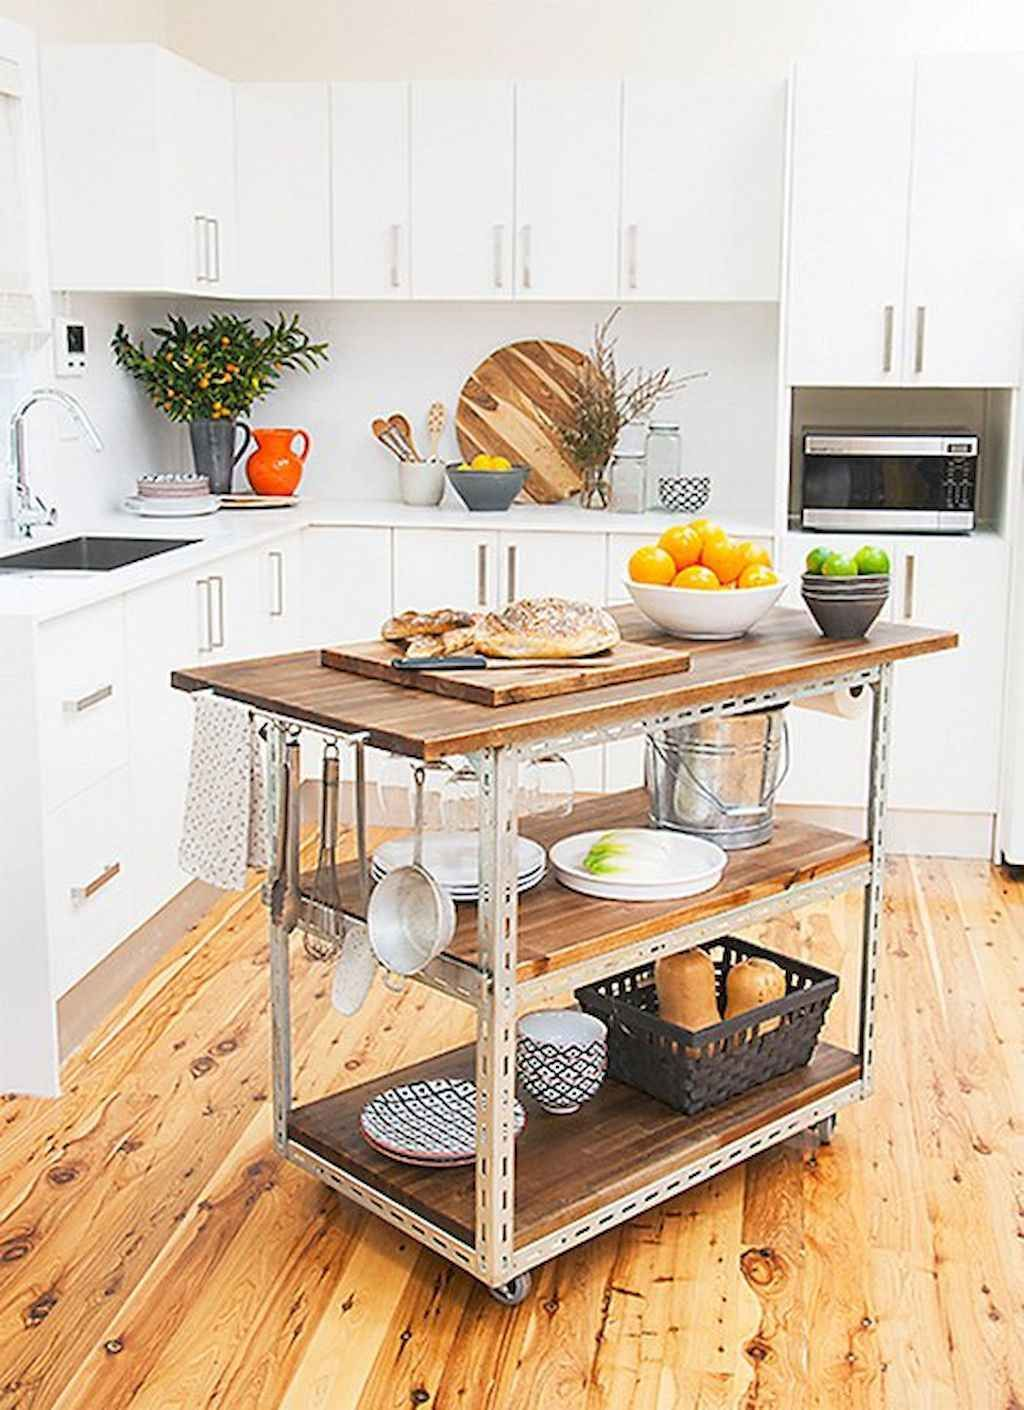 70 Brilliant Small Apartment Kitchen Decor Ideas (8